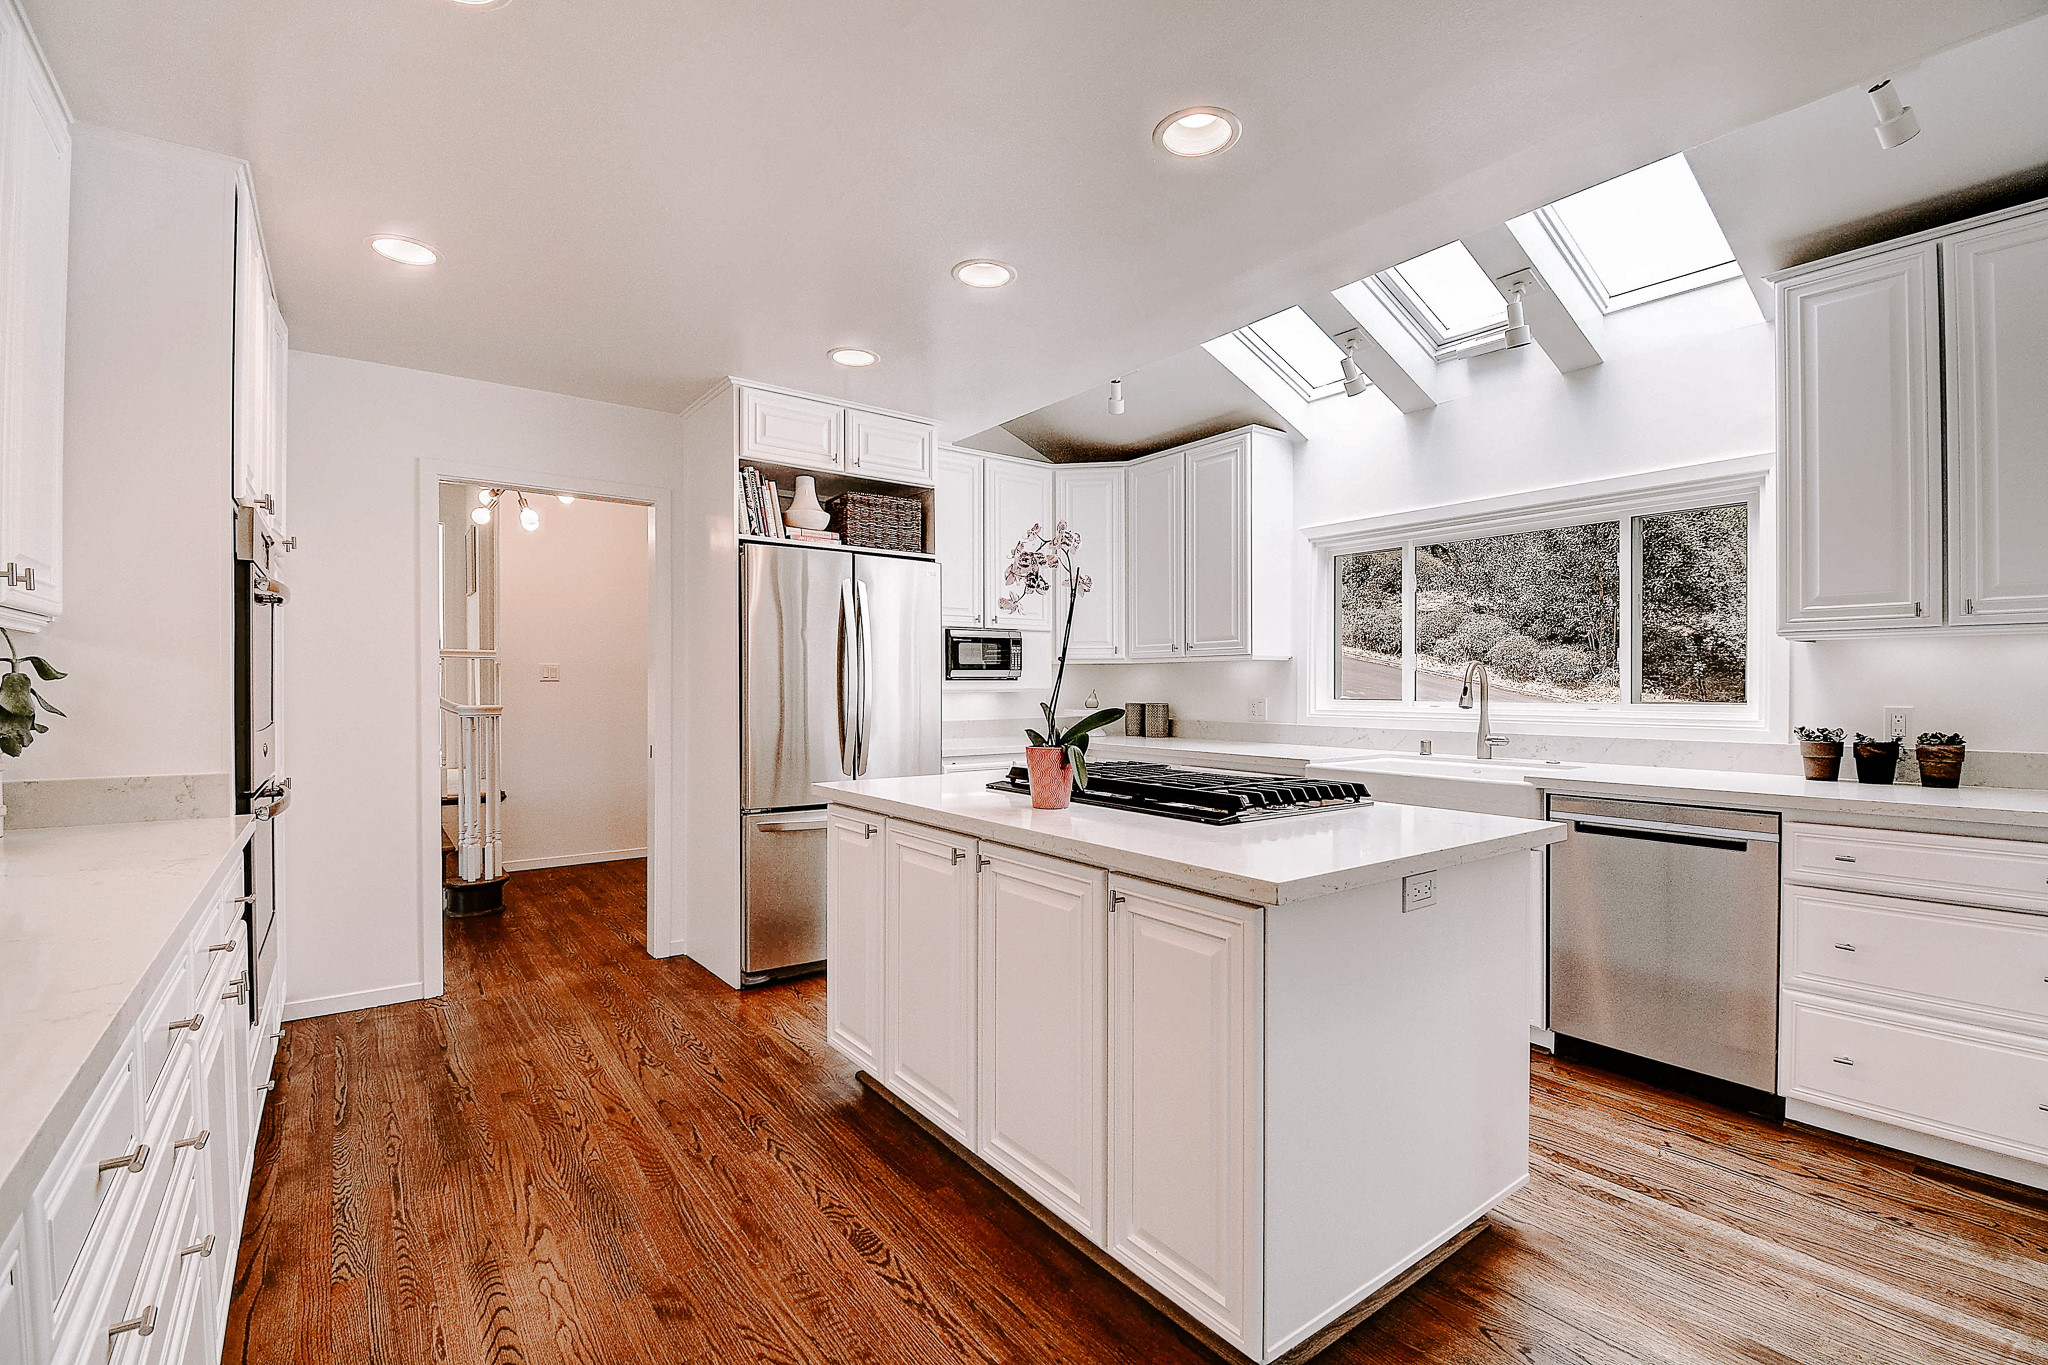 210 Bretano Way-18Greenbrae Real Estate - Listed by Team Own Marin County .jpg